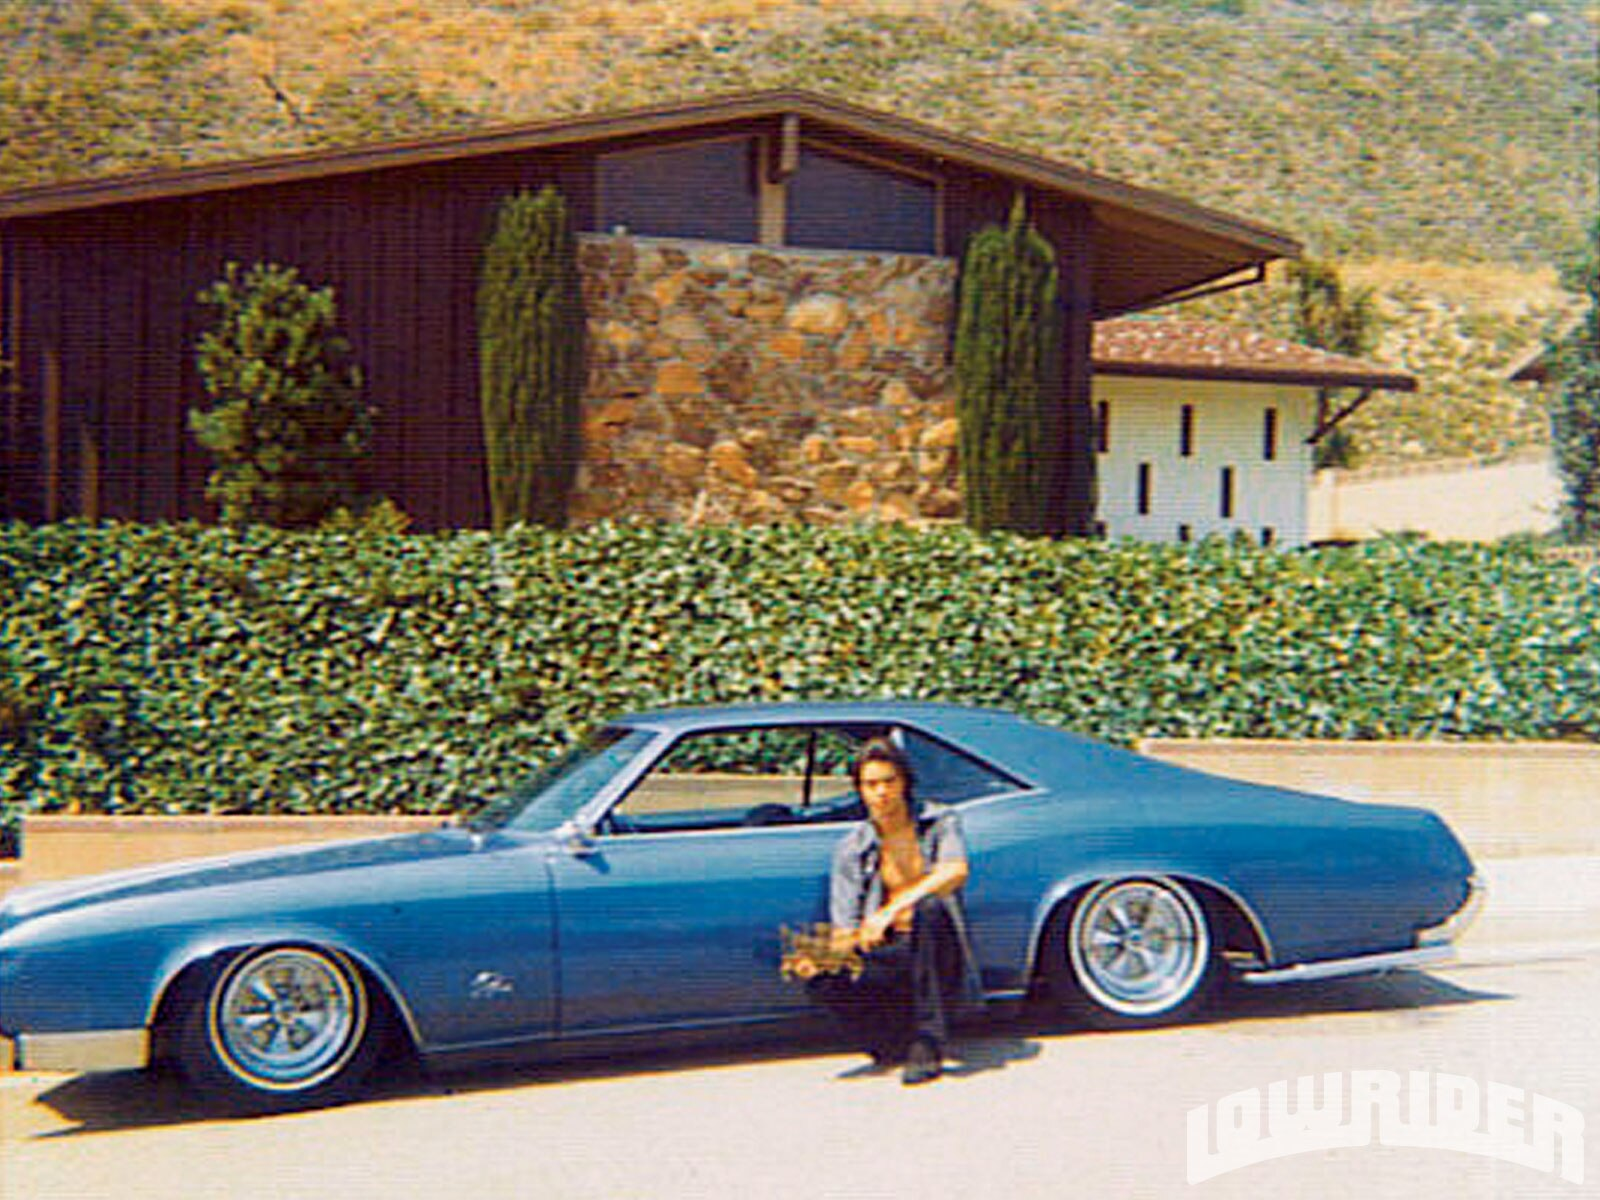 Ltd Lowrider >> Bachelors LTD Car Club East Los Angeles - American Muscle Cars - Lowrider Magazine